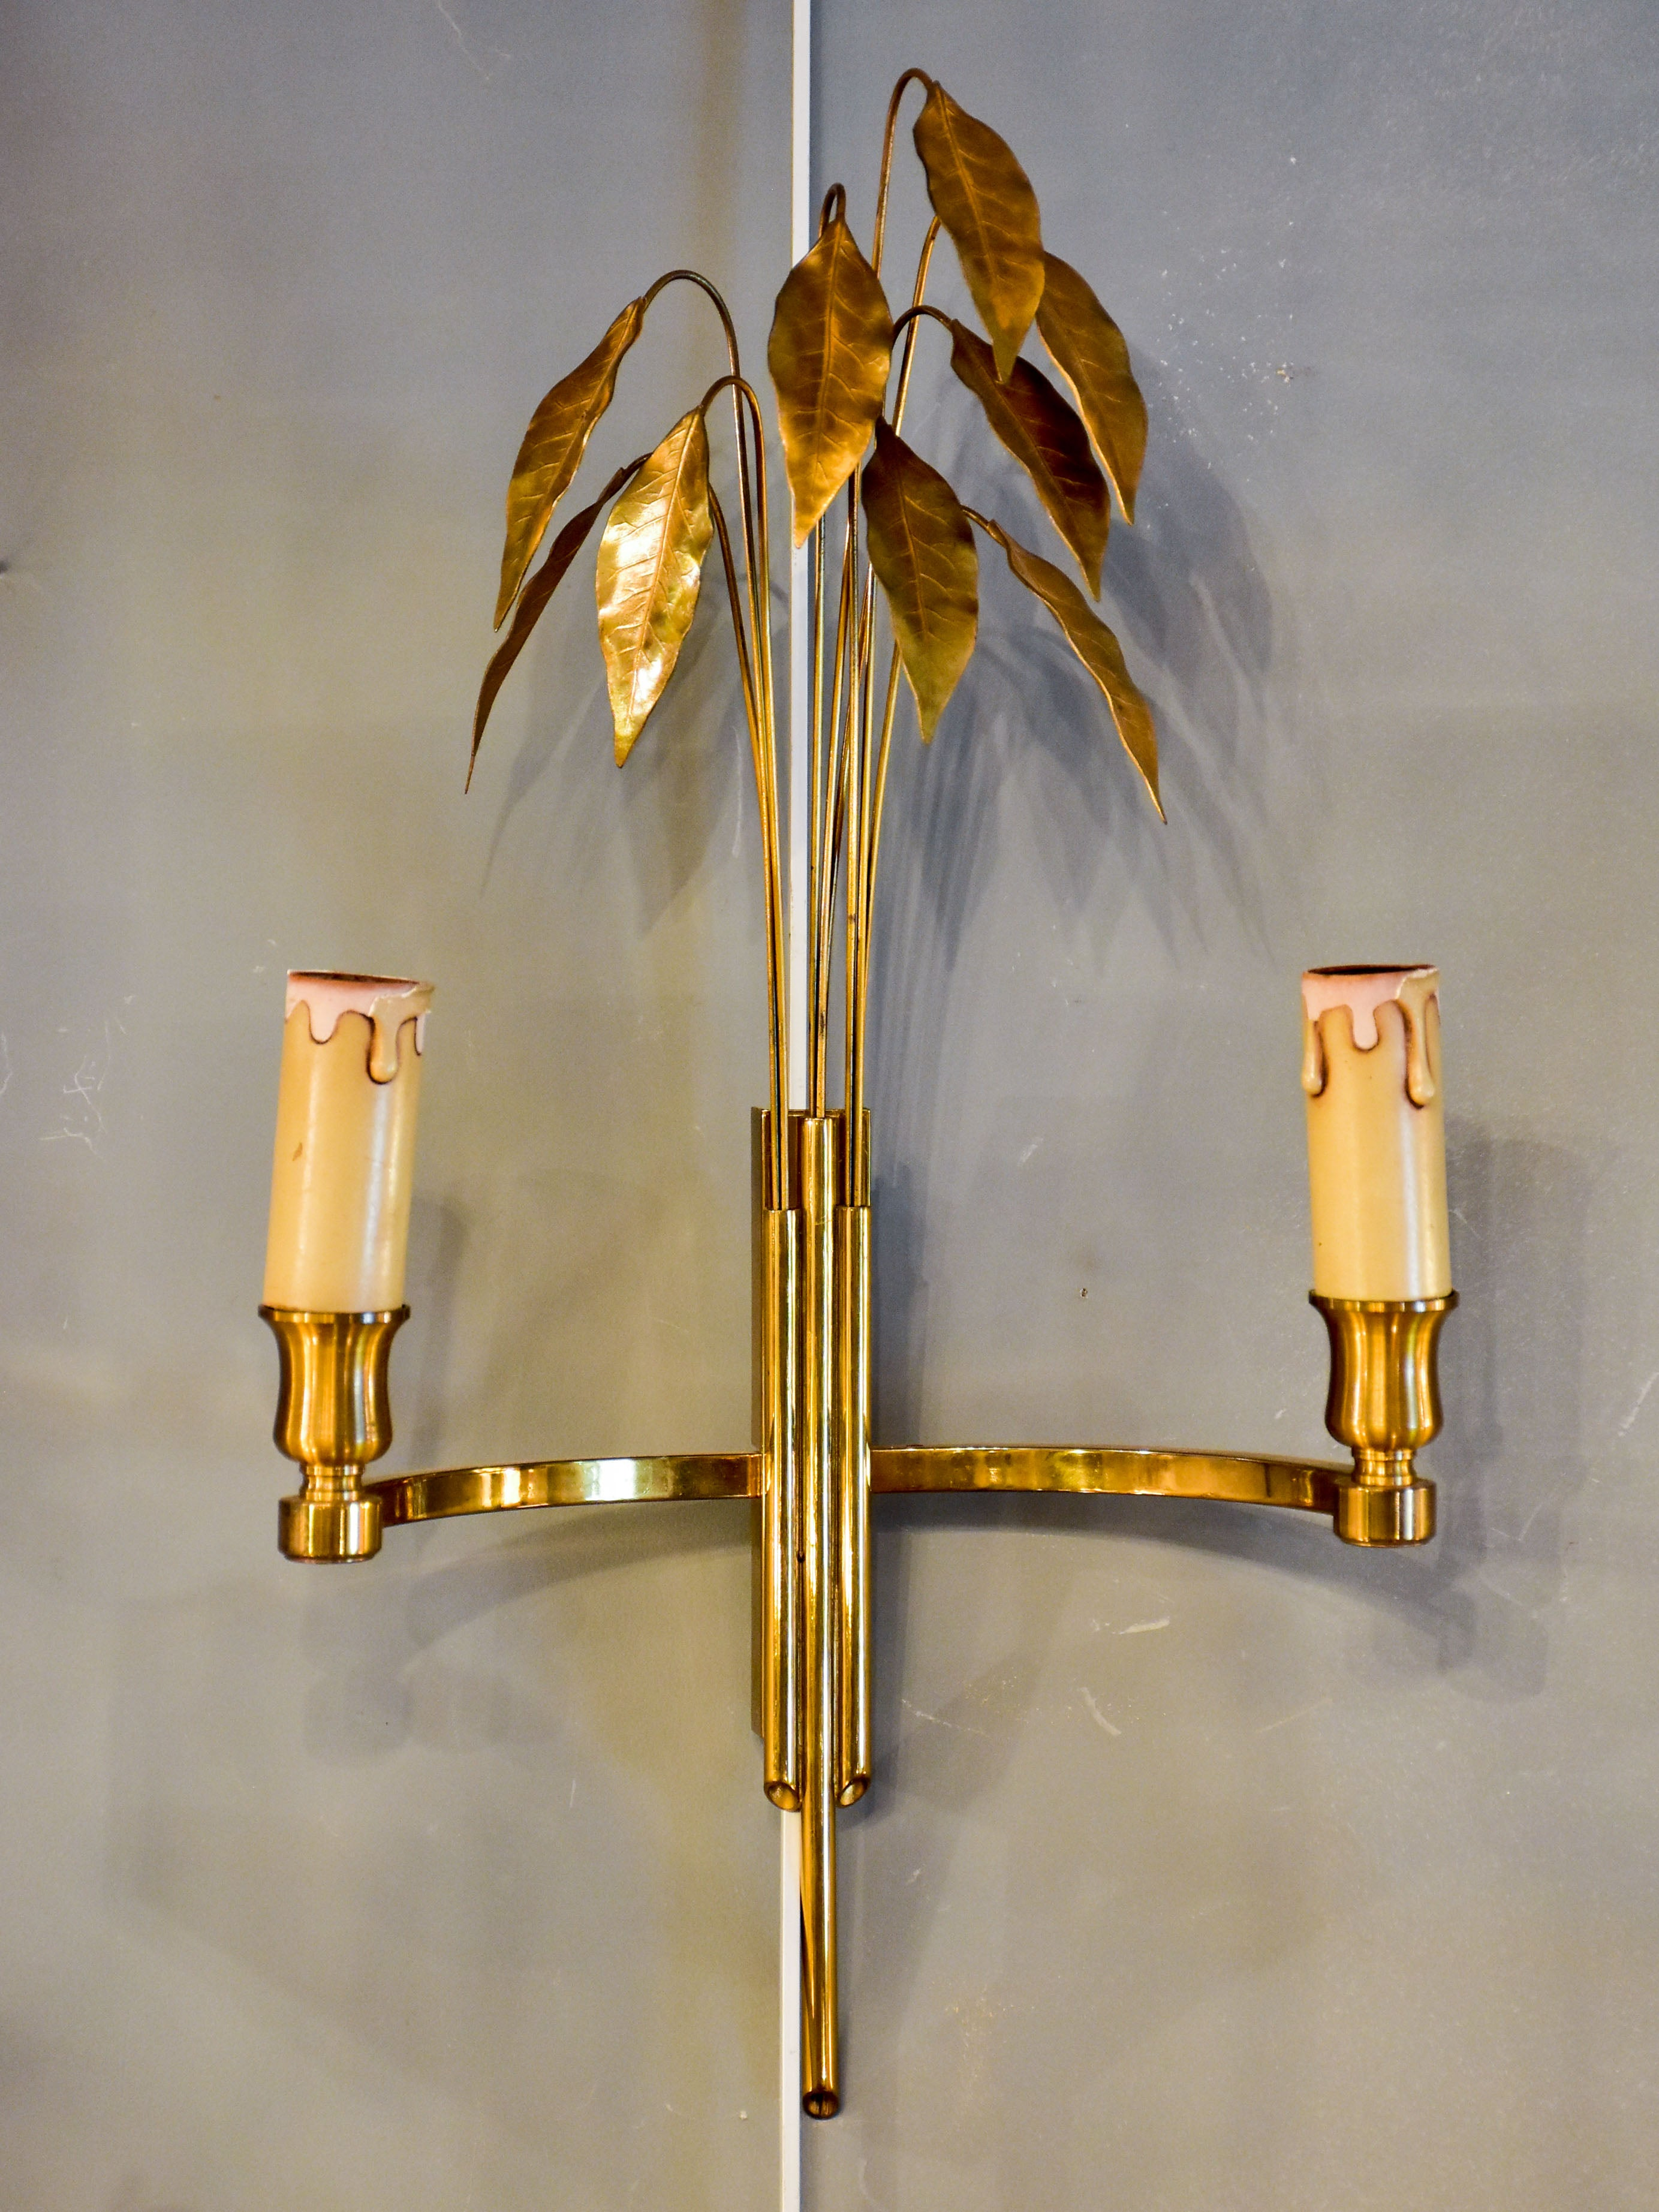 Pair of Maison Charles wall sconces with gold bay leaves